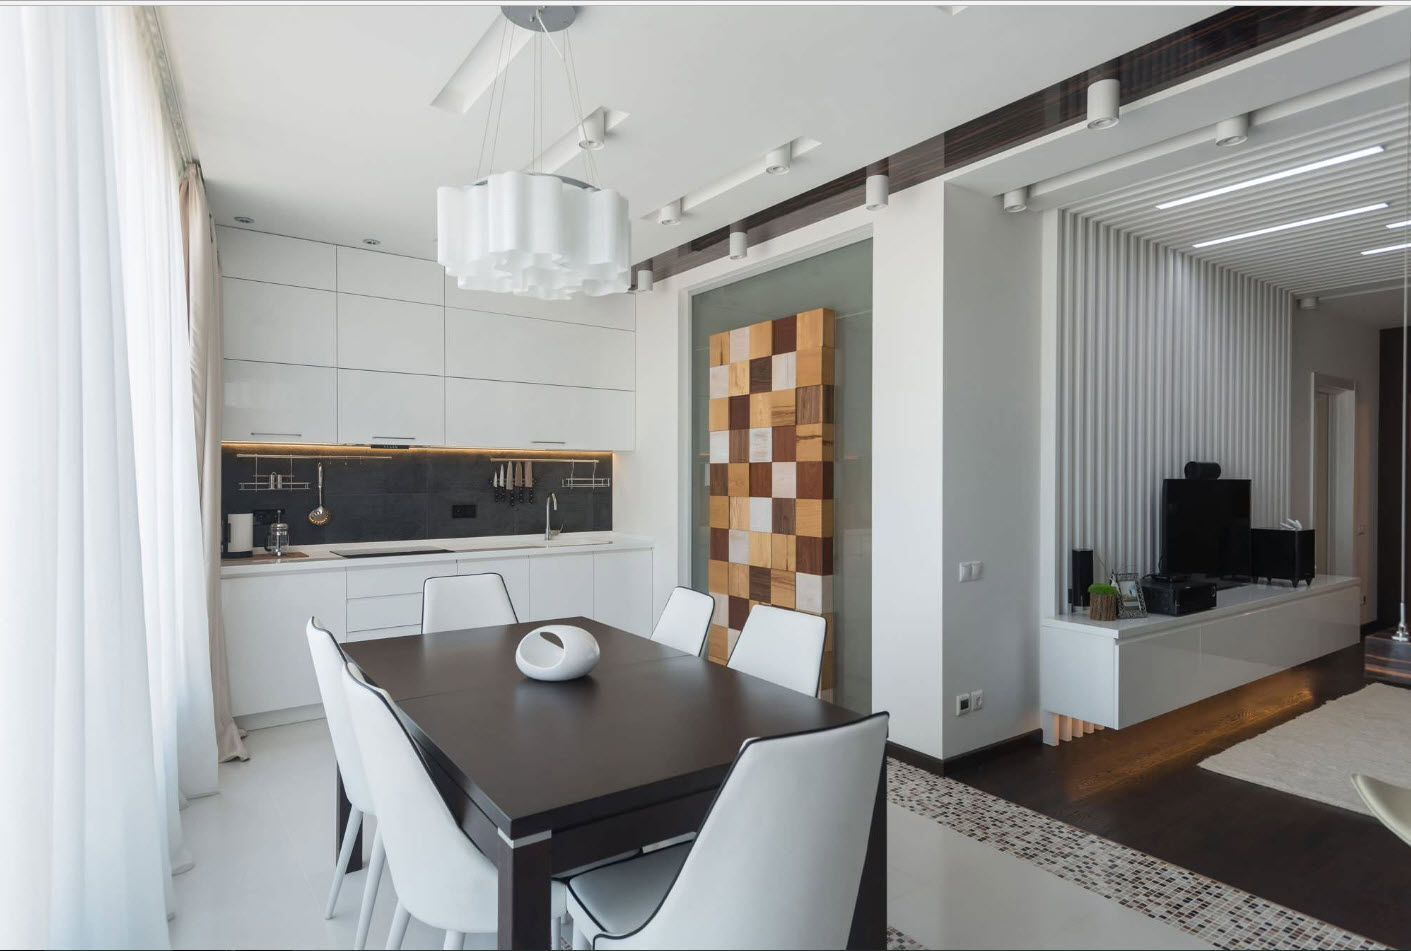 Nice mosaic kitchen accent wall and black table makes the interior the motley one